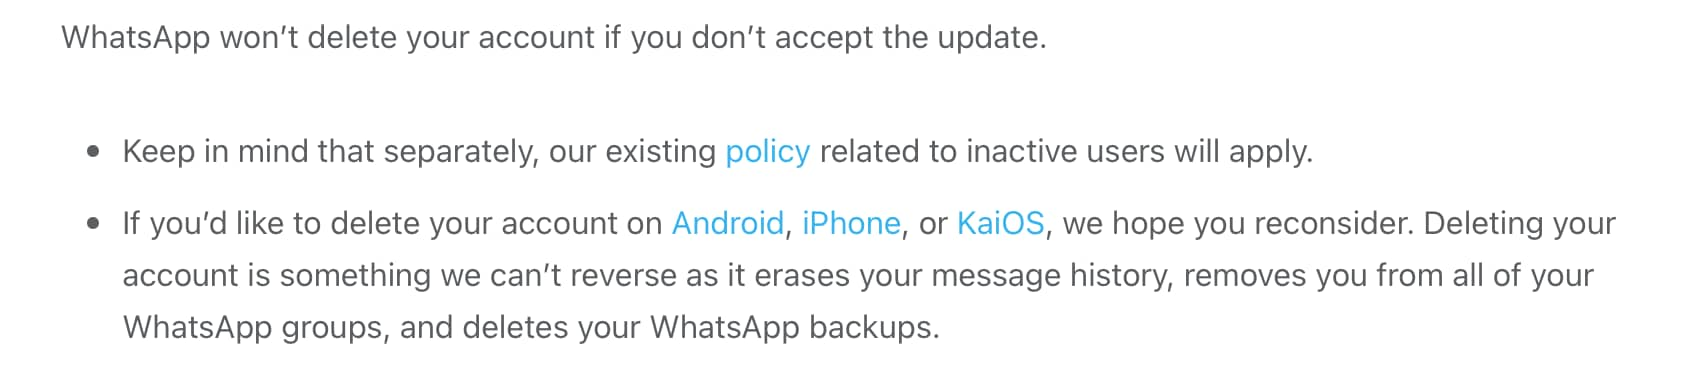 Don't worry, you don't HAVE to accept the new privacy policy.